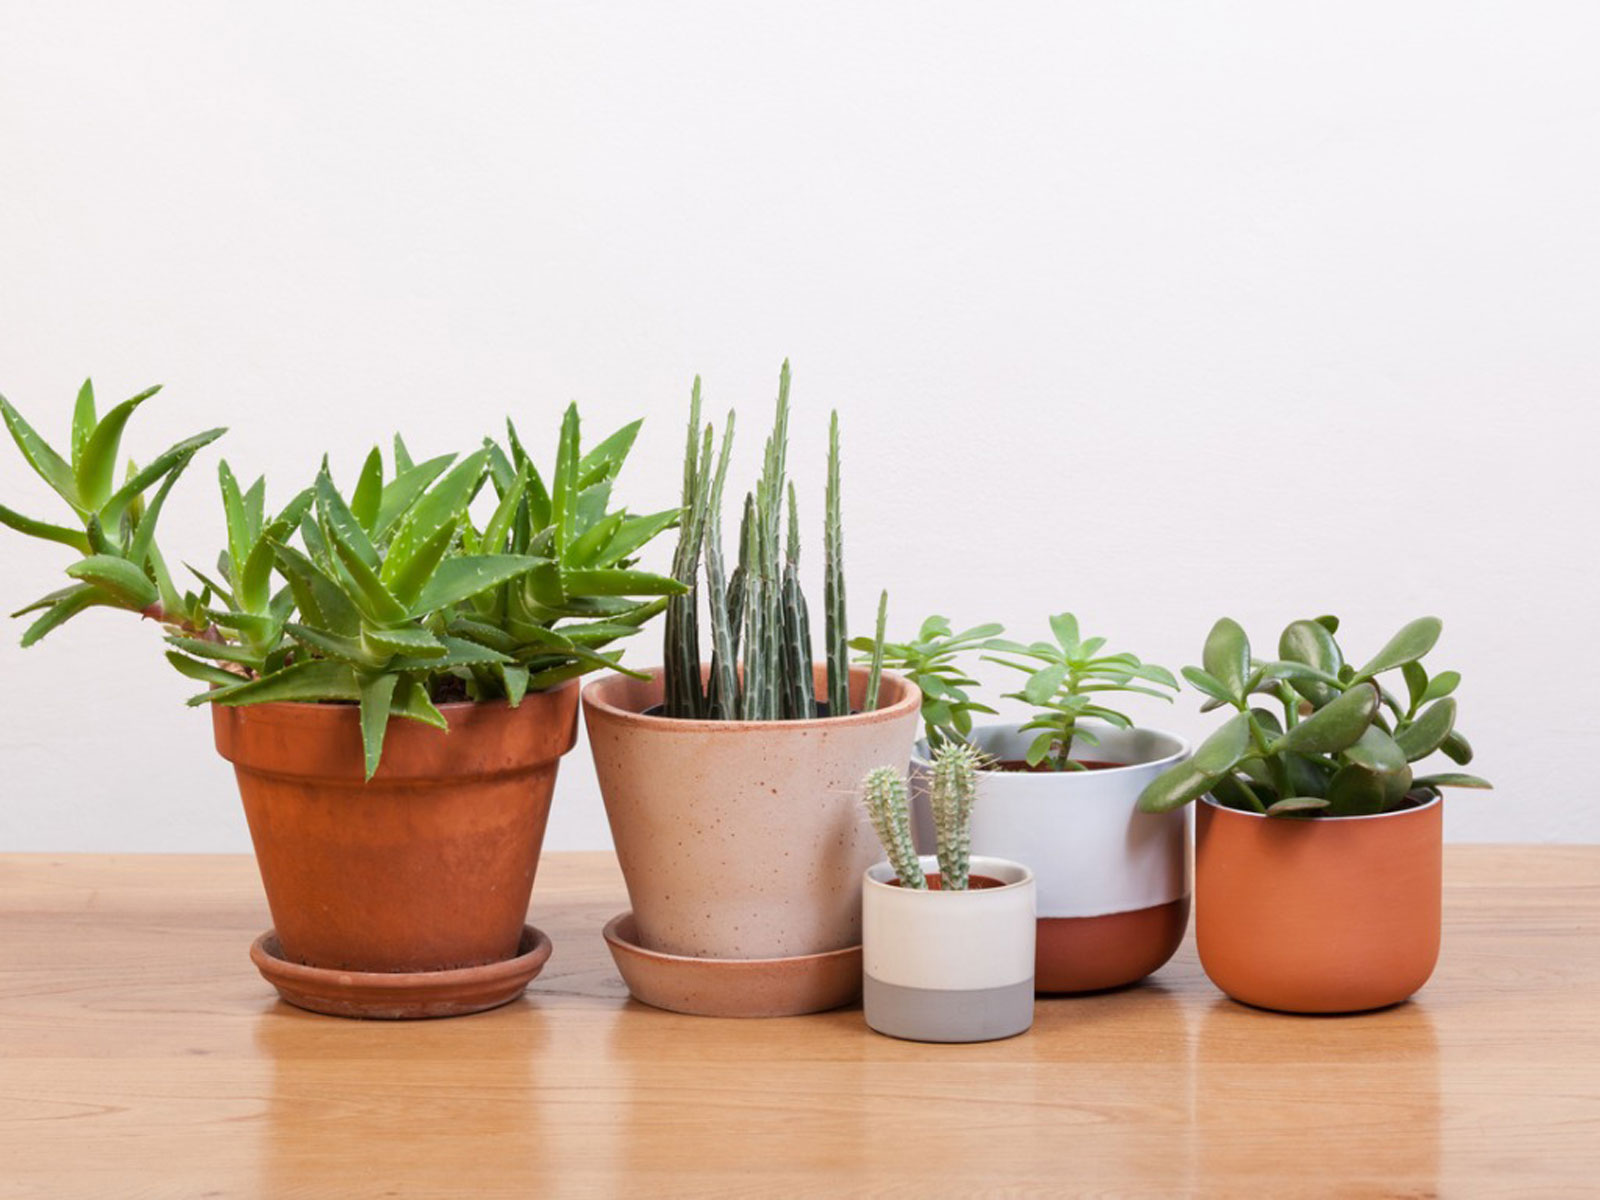 Growing Cactus And Succulent Plants Indoors